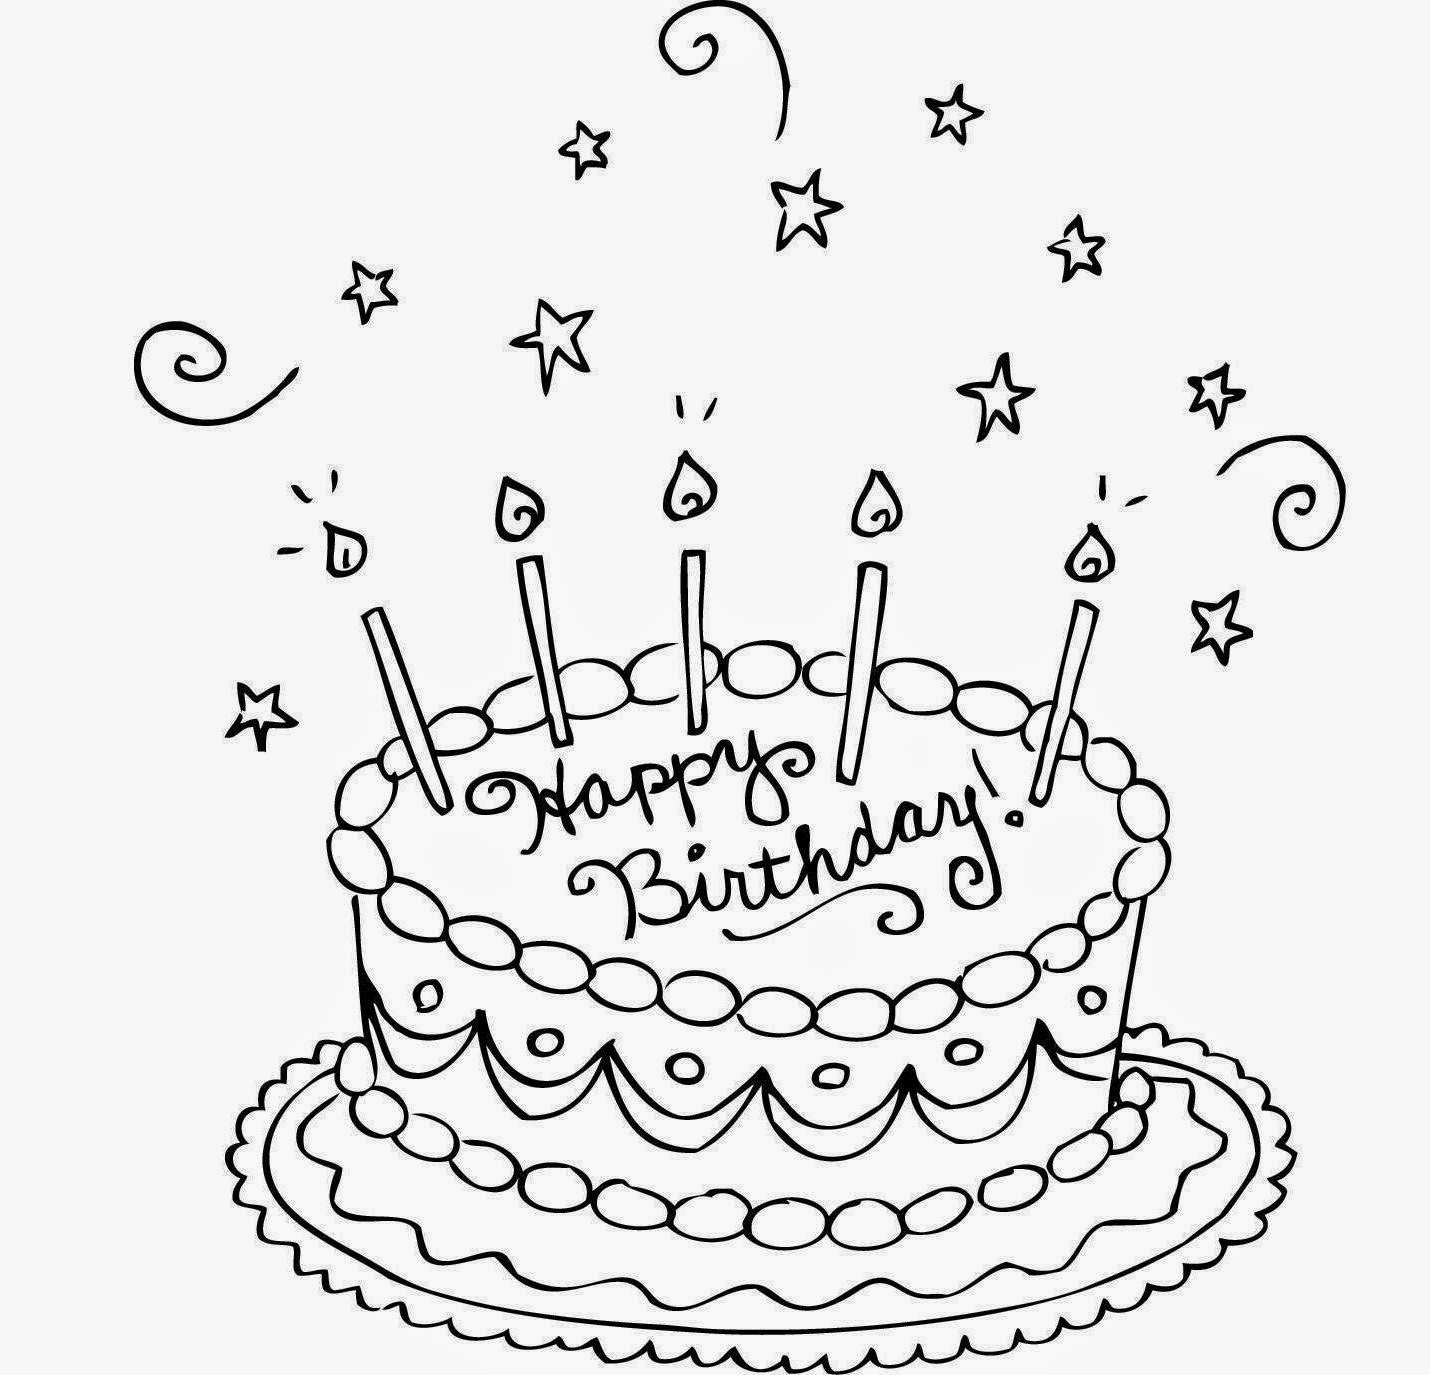 Birthday Cake Pencil Drawing At Getdrawings Com Free For